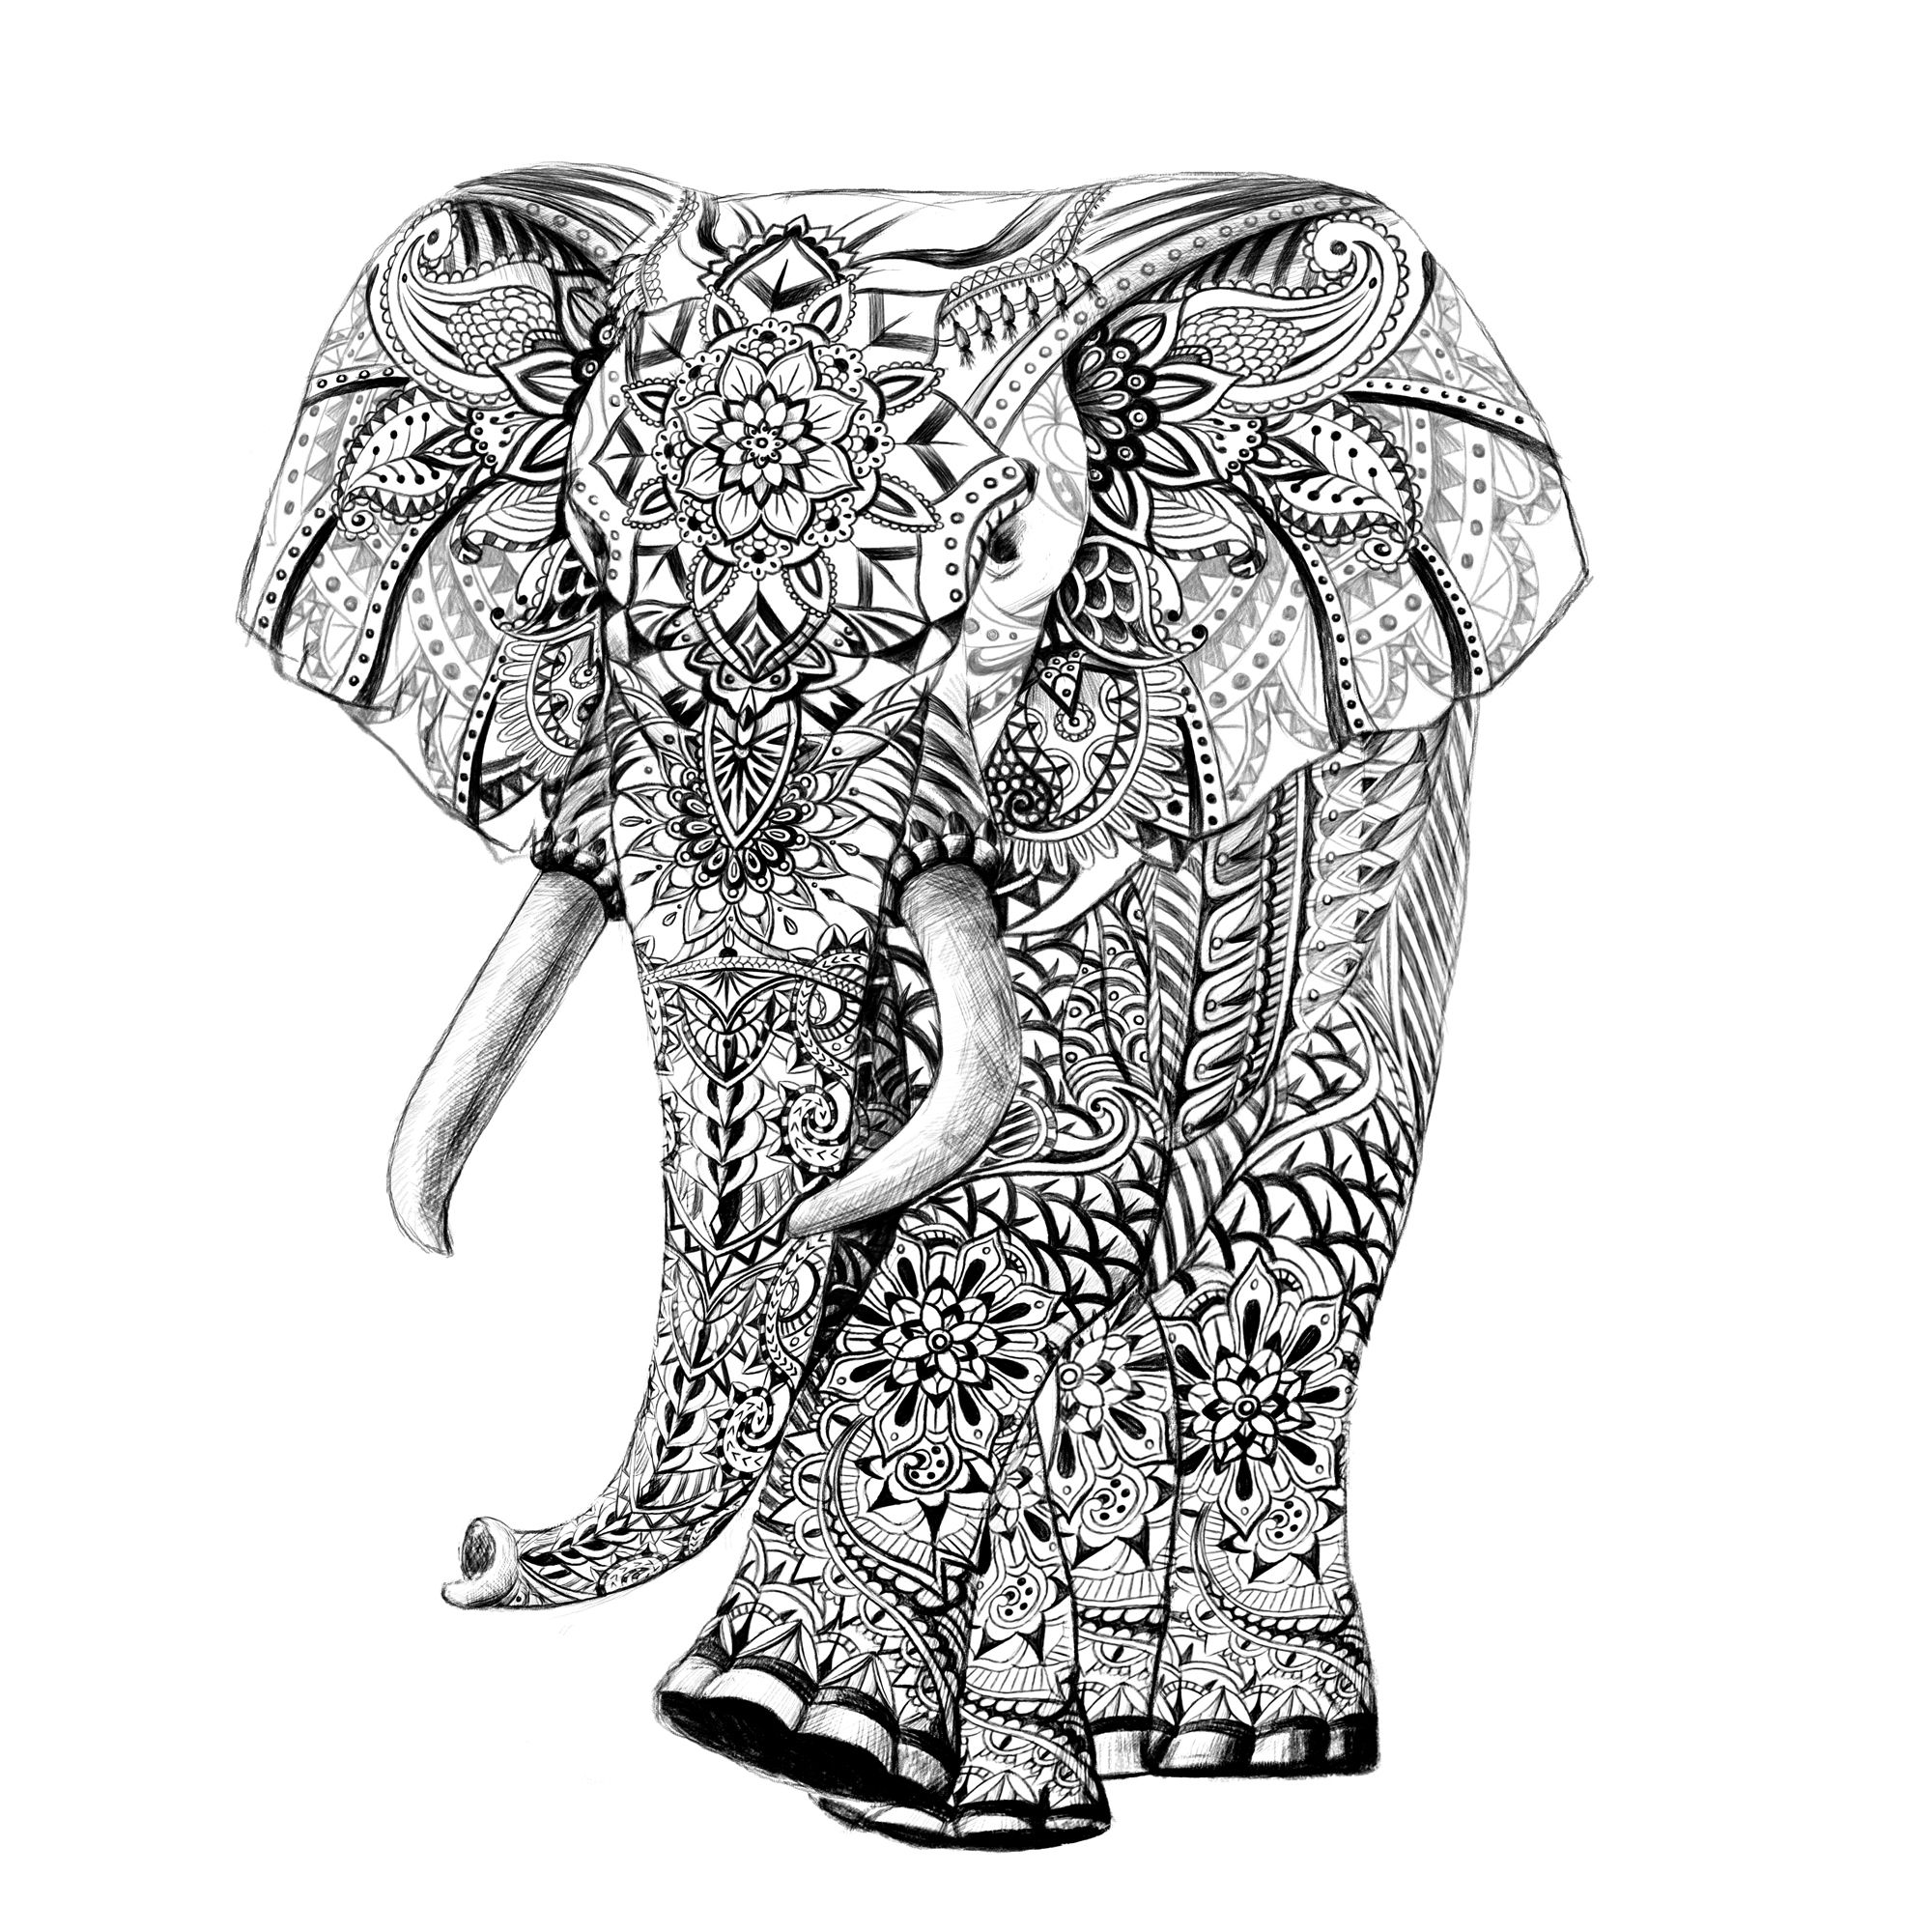 2000x2000 elephant drawing feminine for free download